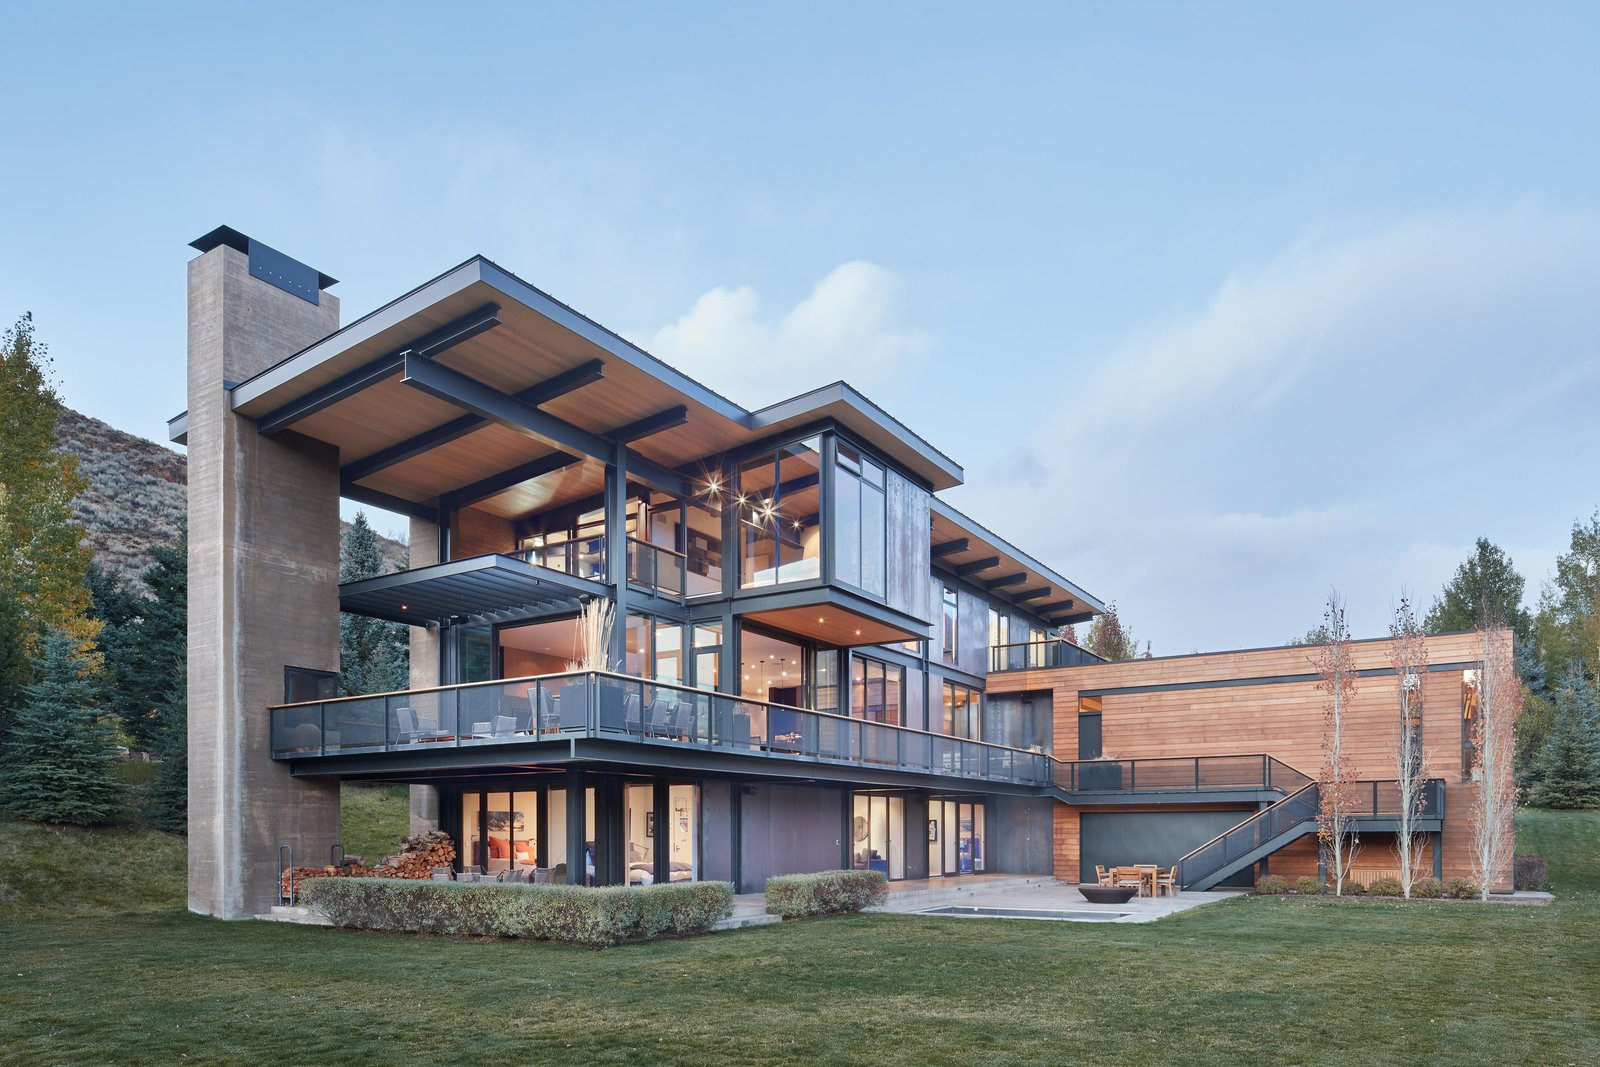 Lake Creek Residence